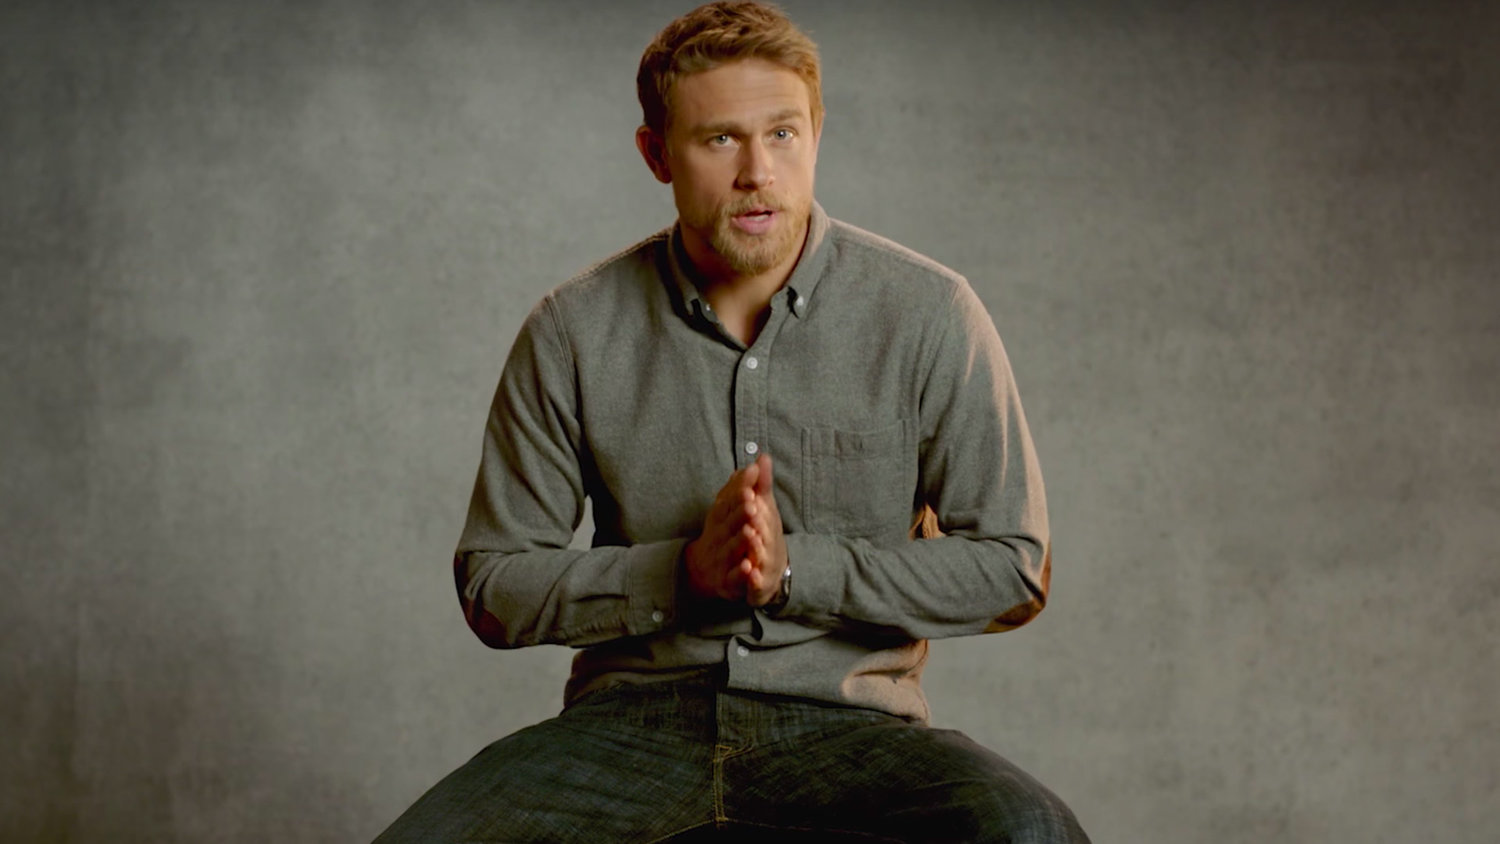 Win a Trip to London to Join Charlie Hunnam at the KING ARTHUR: LEGEND OF THE SWORD Premiere